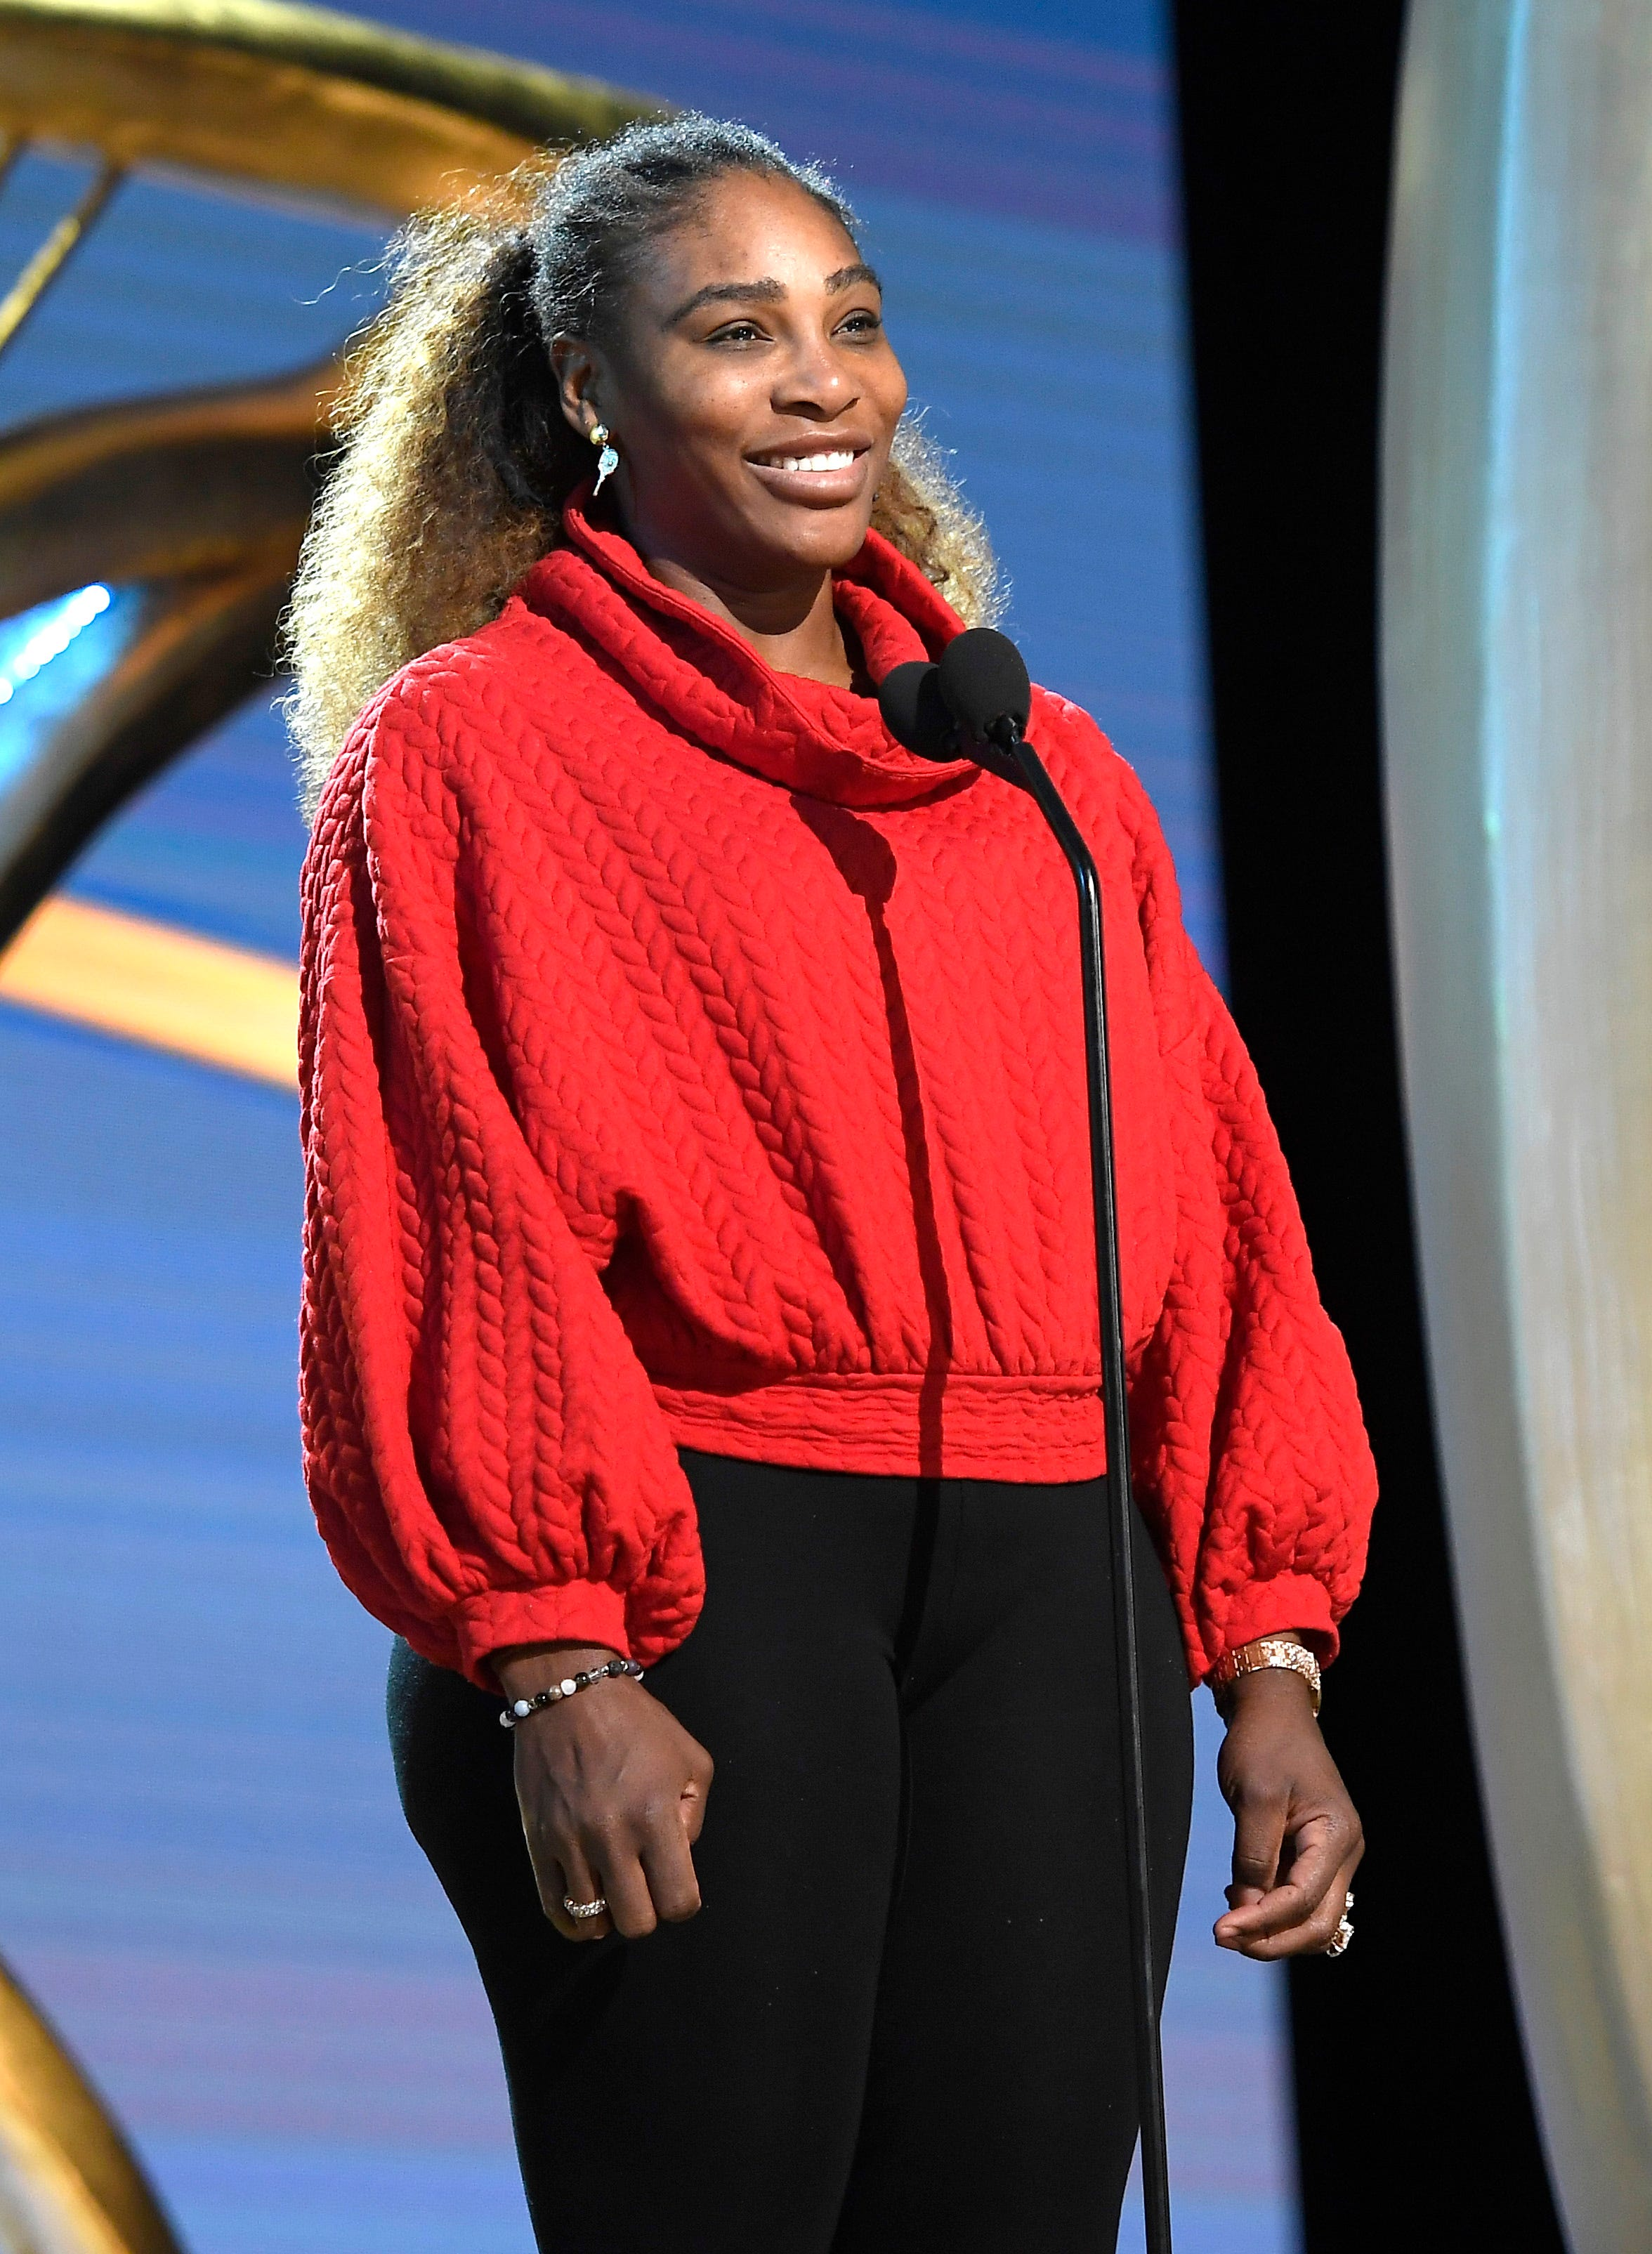 serena-williams-brought-her-daughter-to-oscars-rehearsals-plus-more-celeb-gossip!